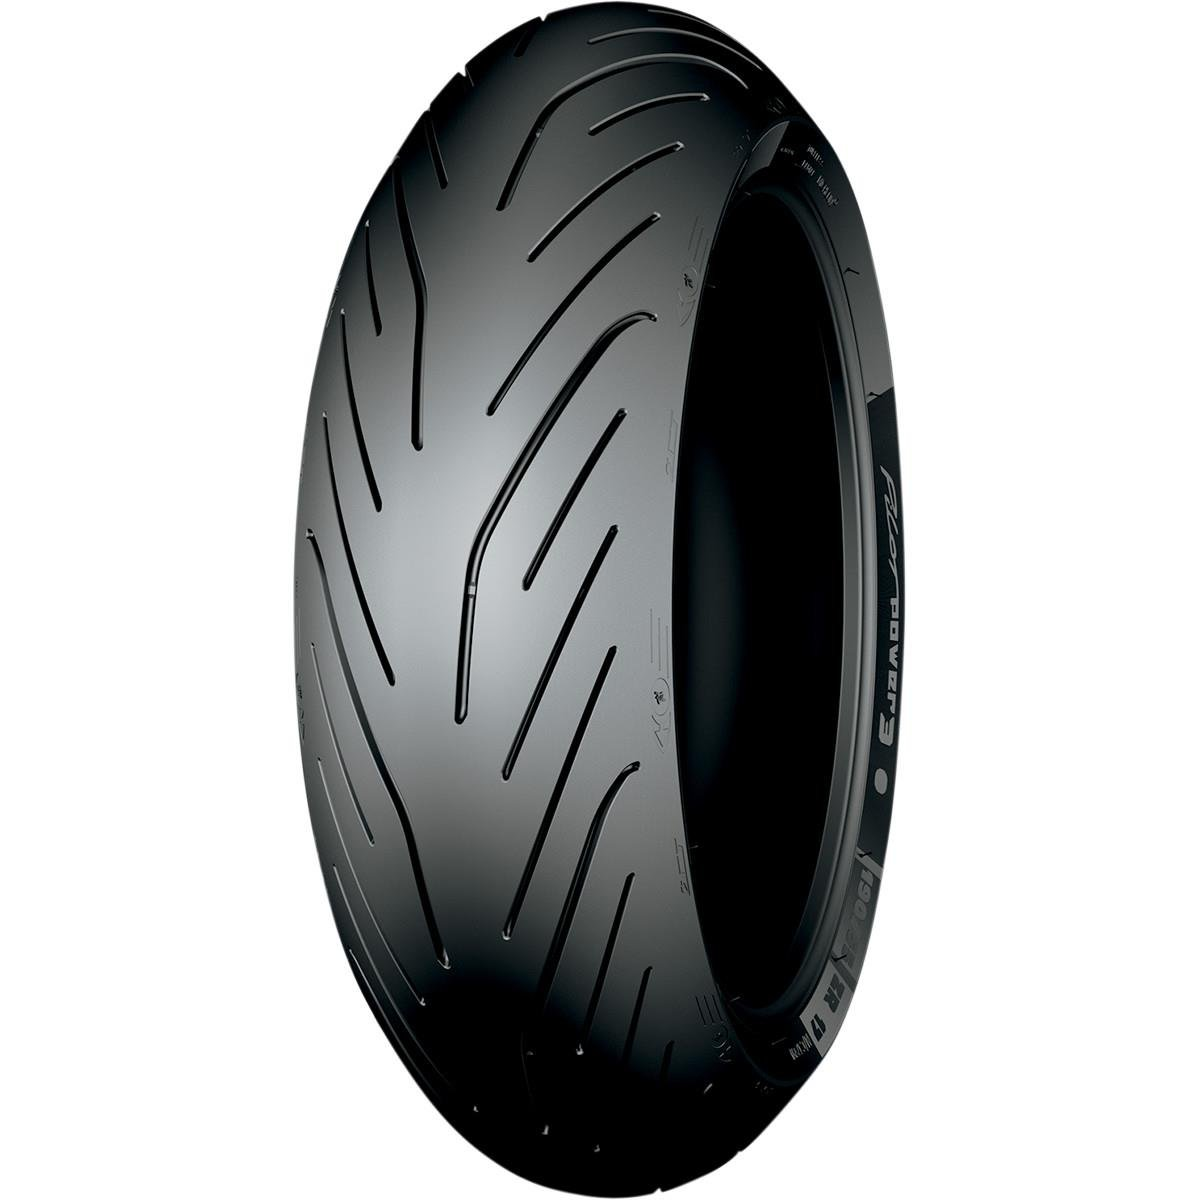 Michelin Pilot Power 3 HP/Track Rear Motorcycle Radial Tire - 190/55R17 75W 4333046853